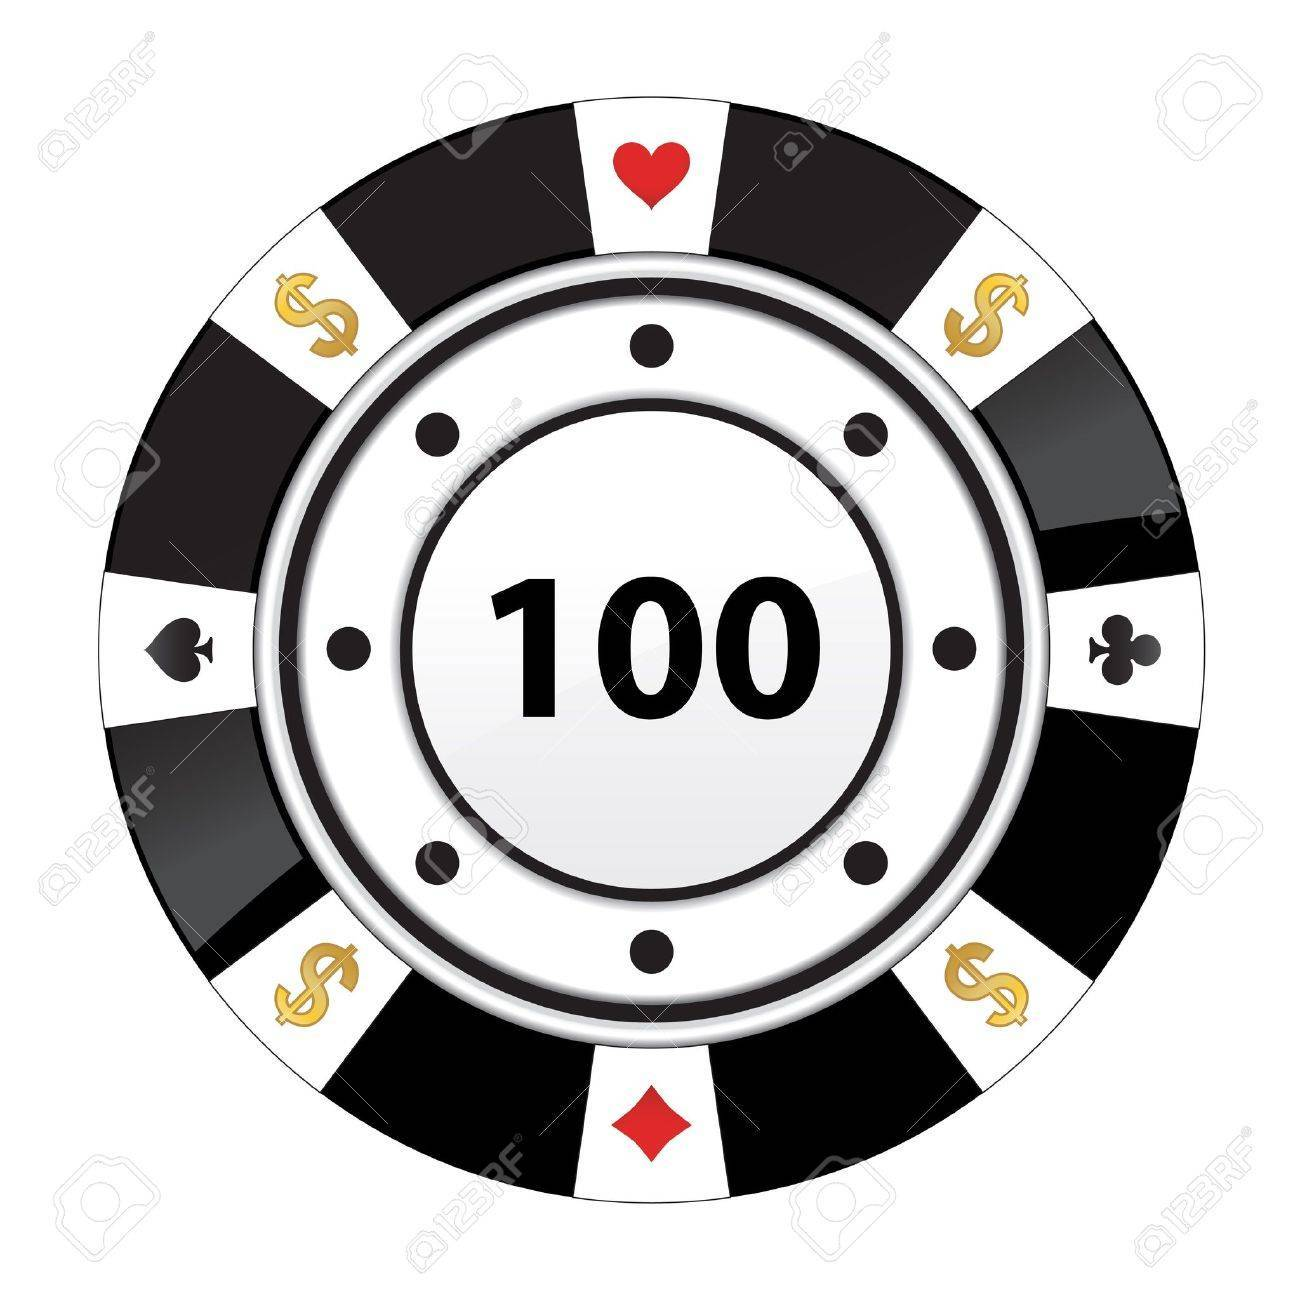 Poker chips clipart free 8 » Clipart Portal.